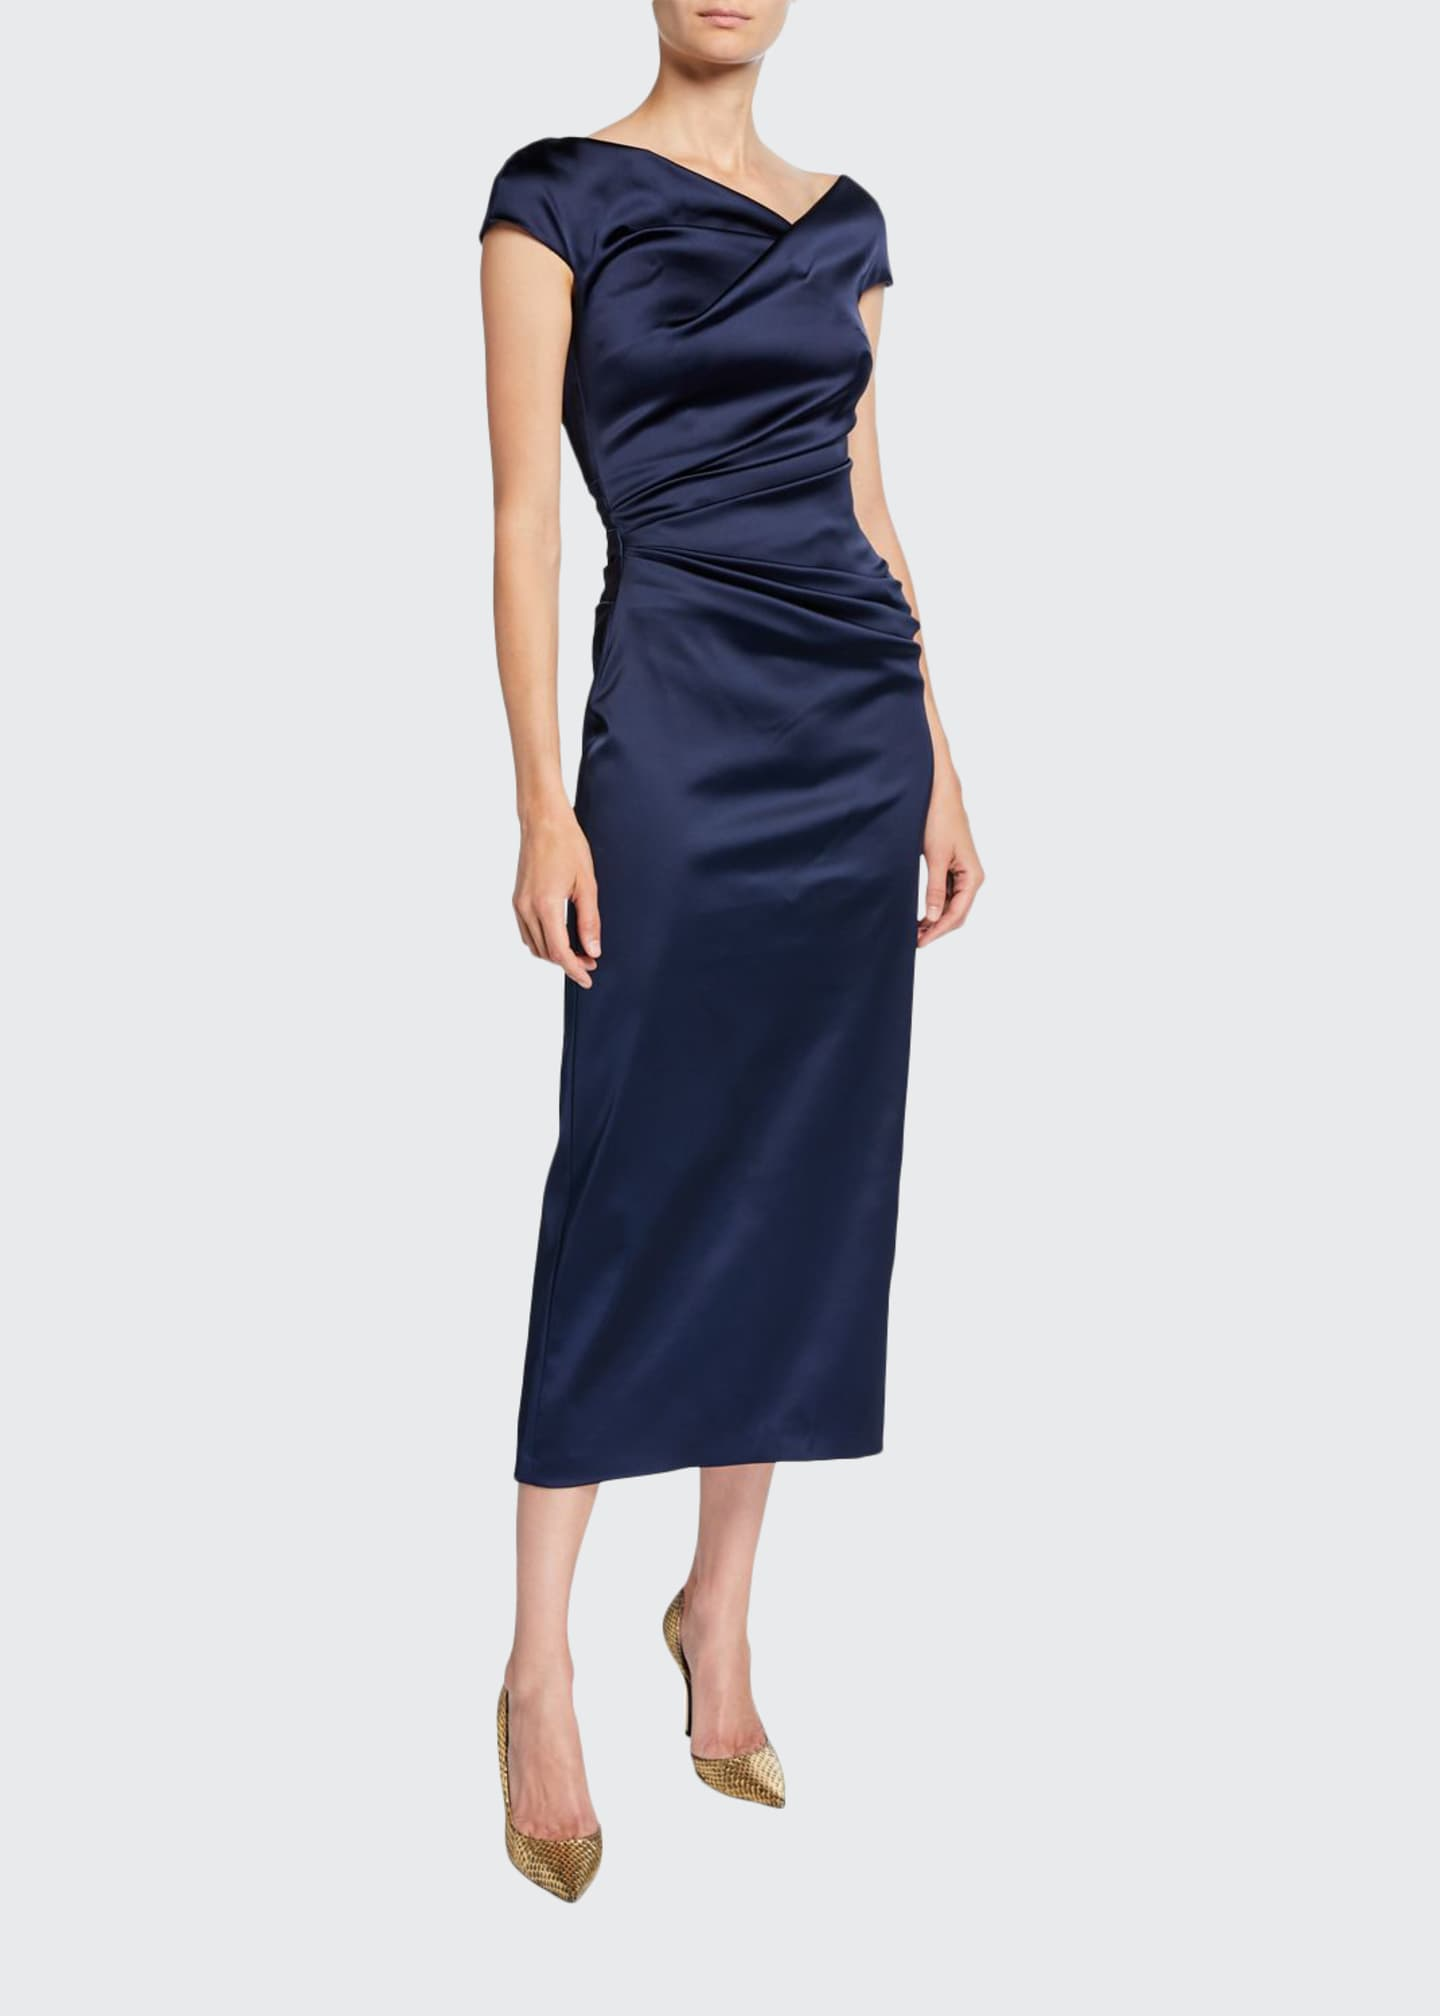 Talbot Runhof Roya High-Neck Cap-Sleeve Draped Midi Satin